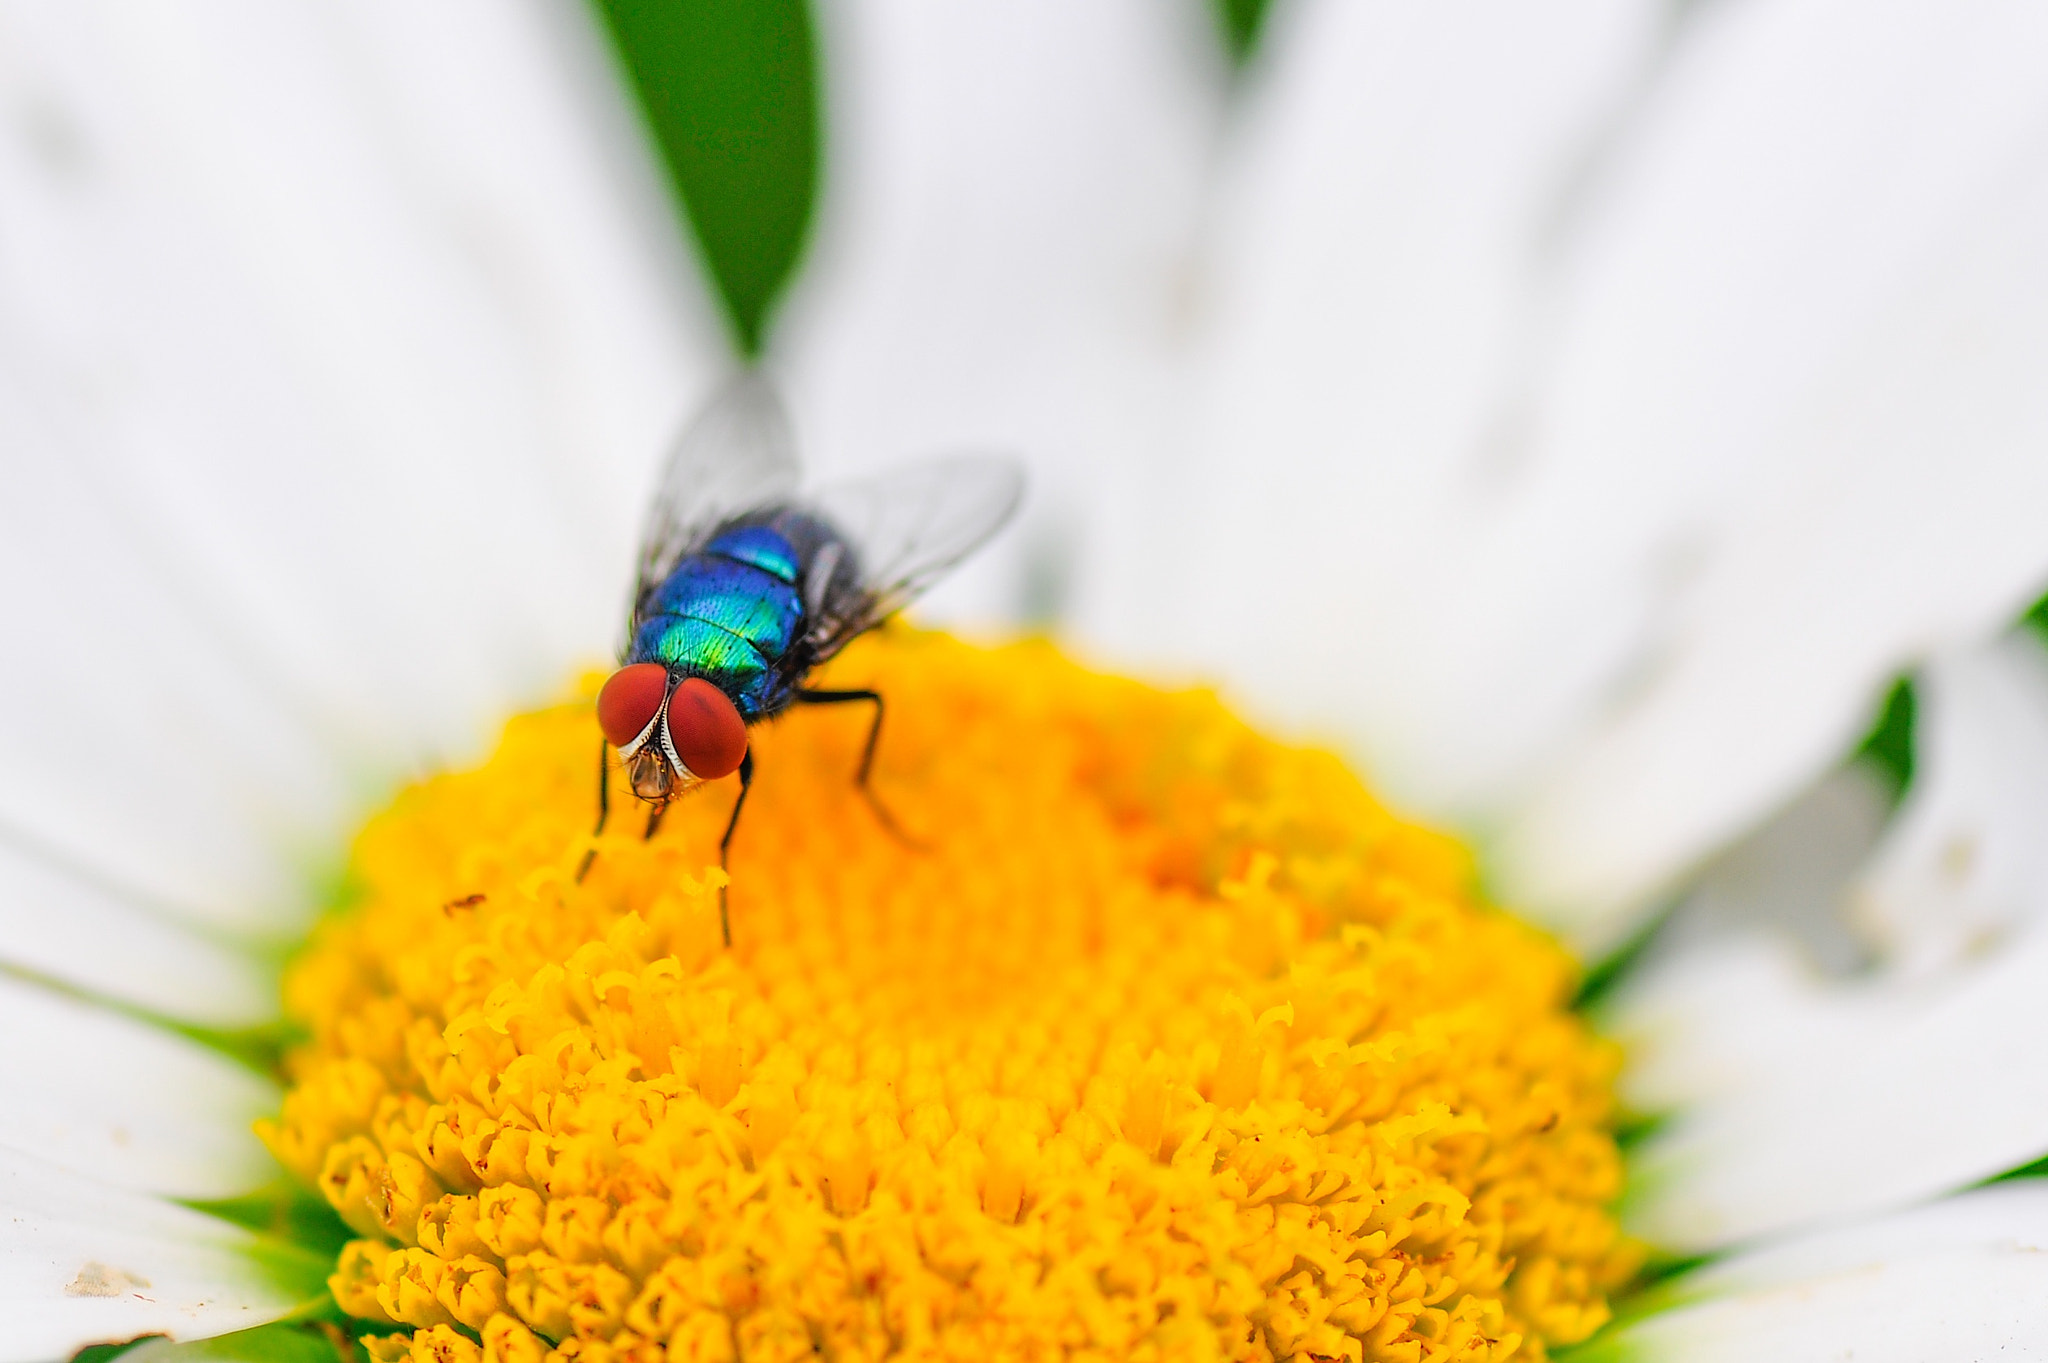 Photograph Daisy & Fly by Sergio Quesada on 500px